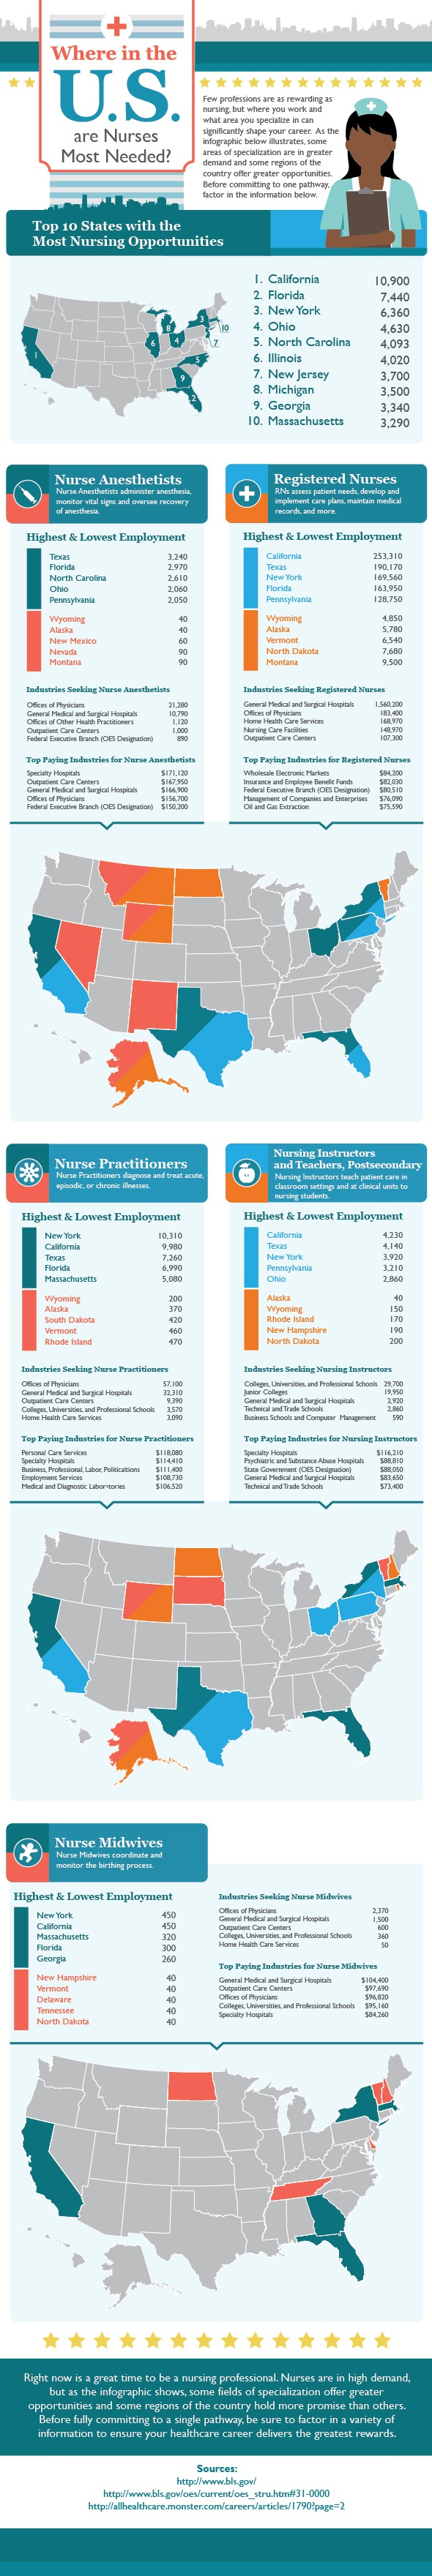 Where In The US Are Nurses Need The Most?